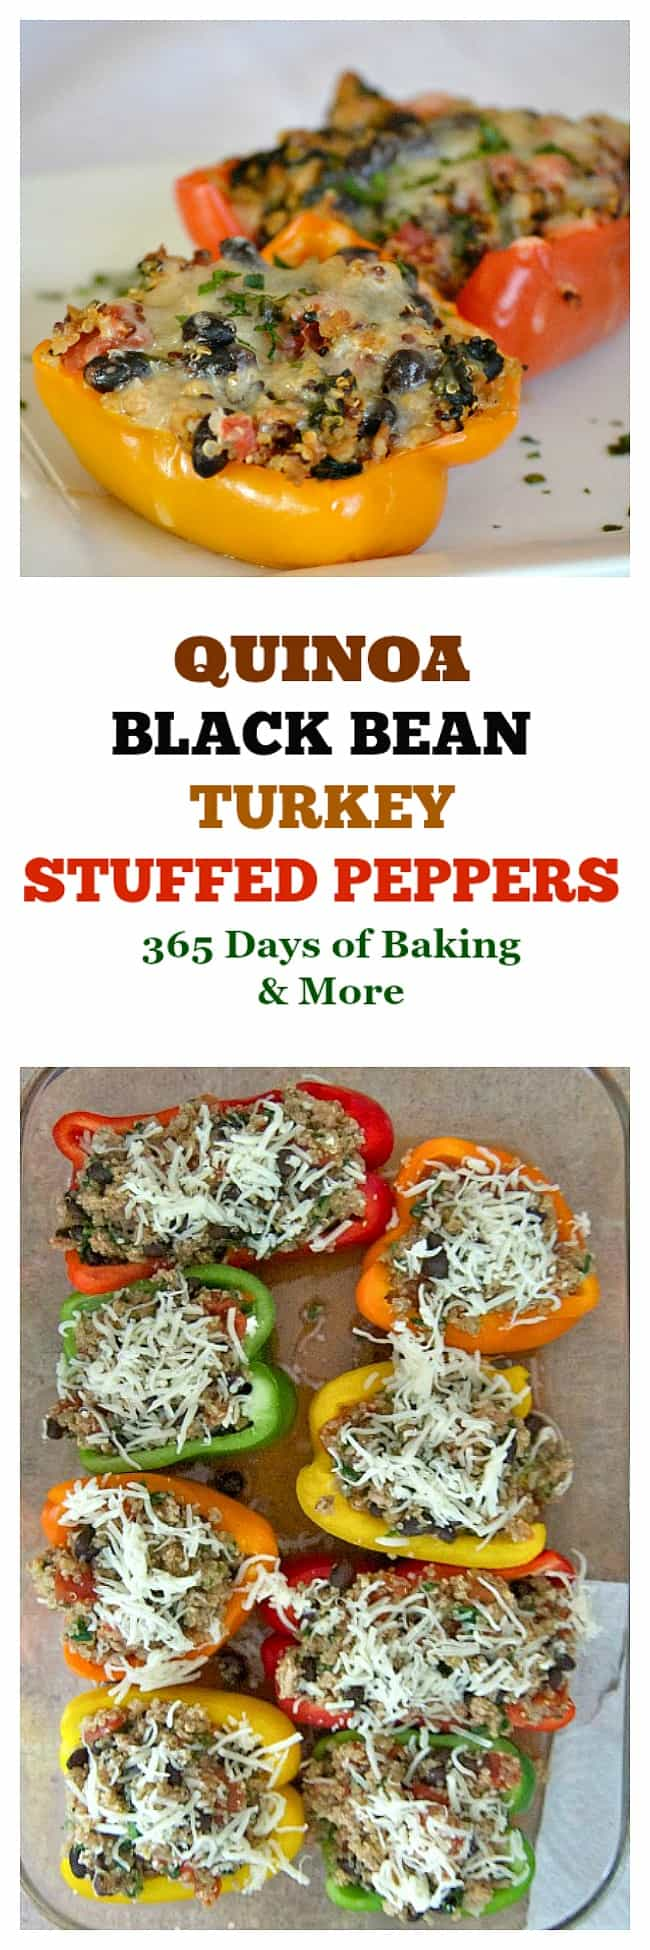 Quinoa, Black Bean and Turkey Stuffed Peppers - colorful bell peppers stuffed with quinoa, black beans and turkey that will satisfy any hungry appetite.